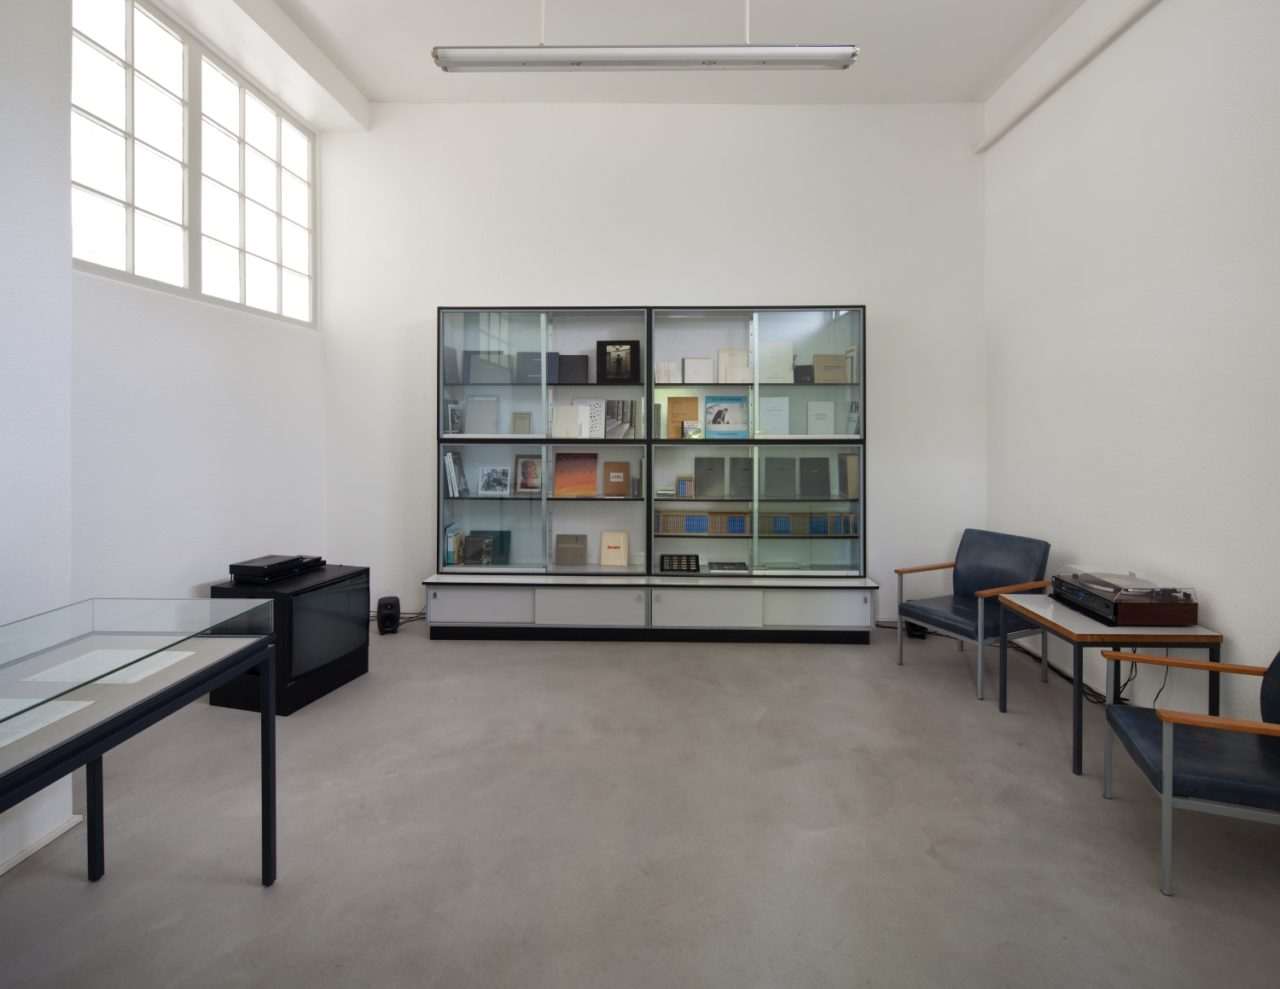 Collected attitudes, Installation view